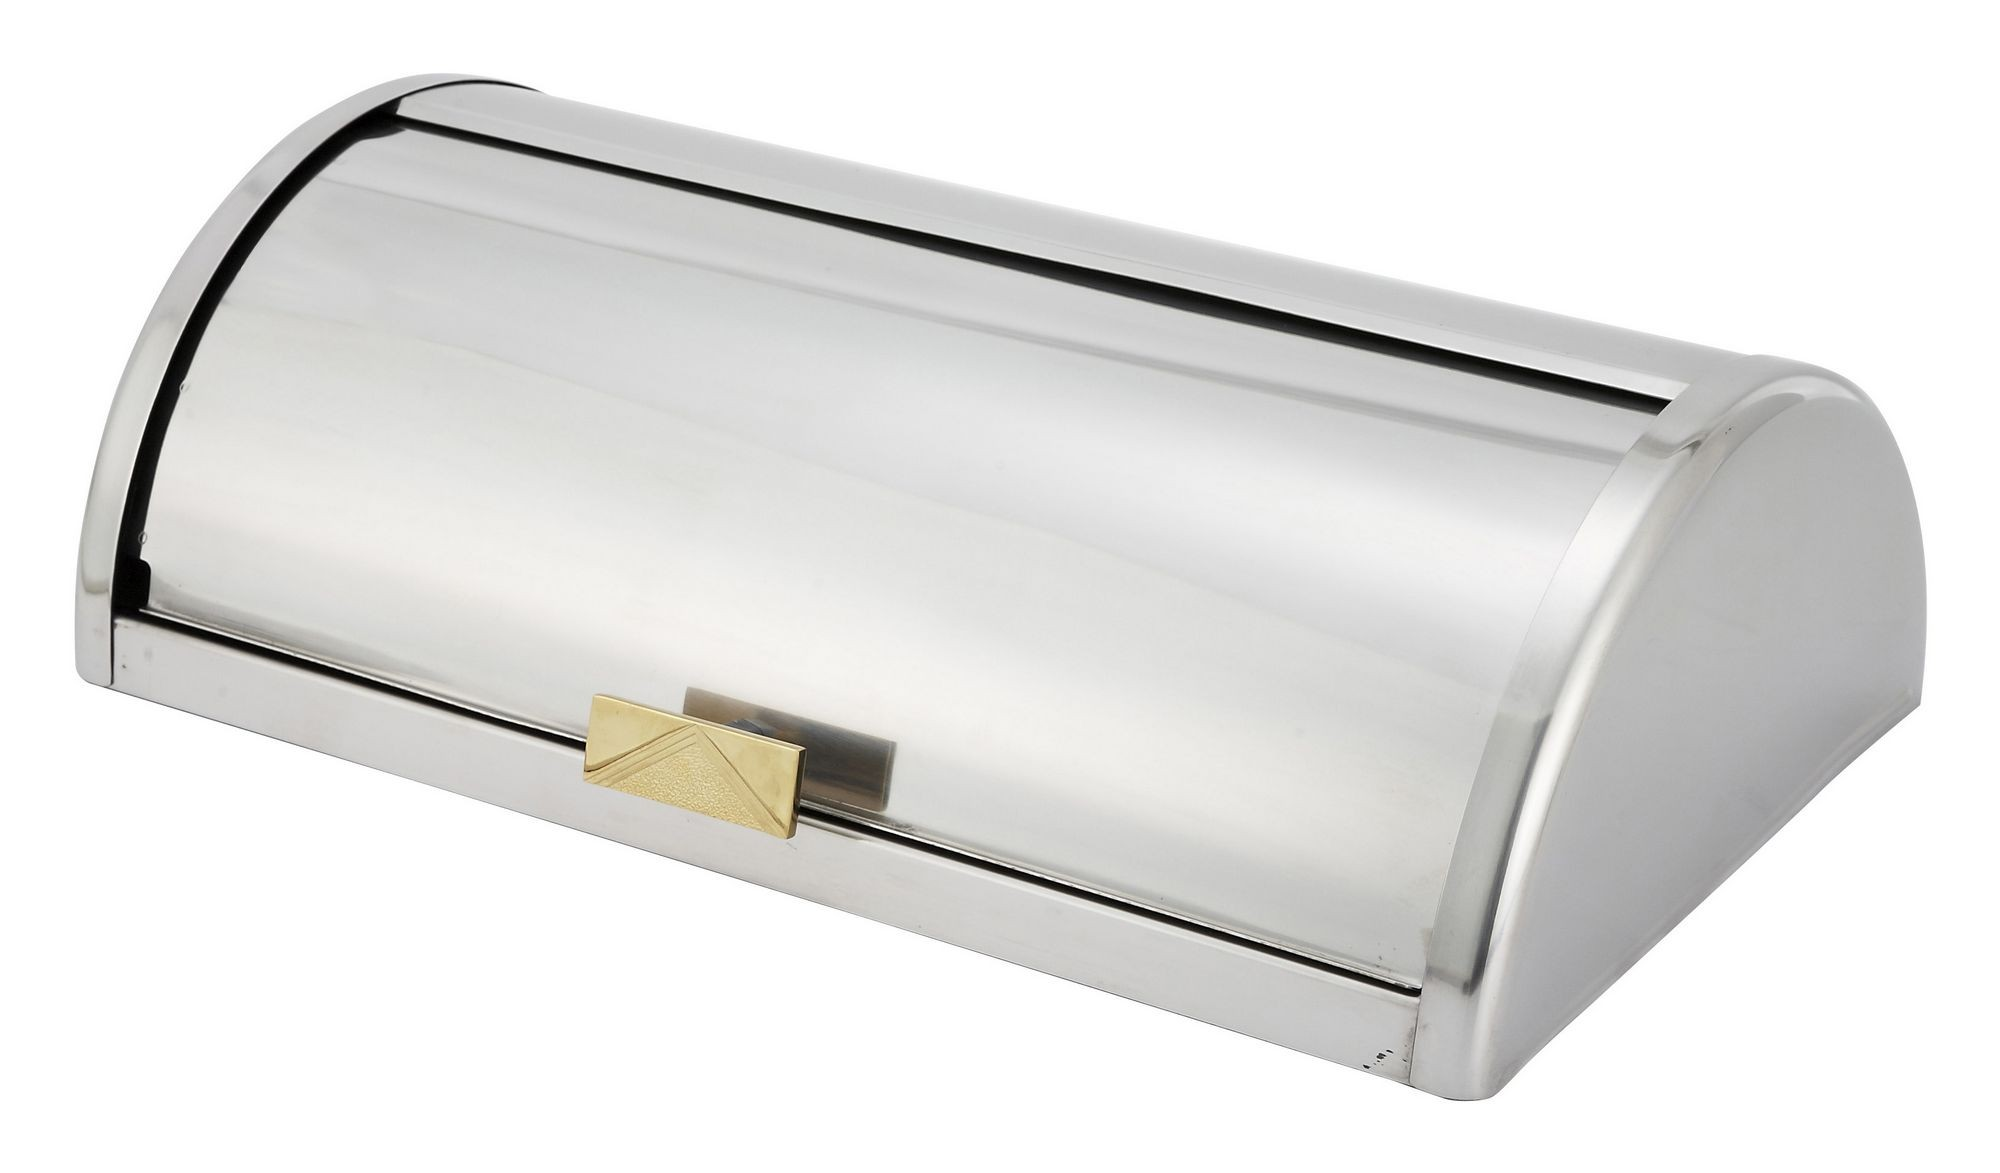 Winco C-RTC Stainless Steel Roll-Top Chafer Cover